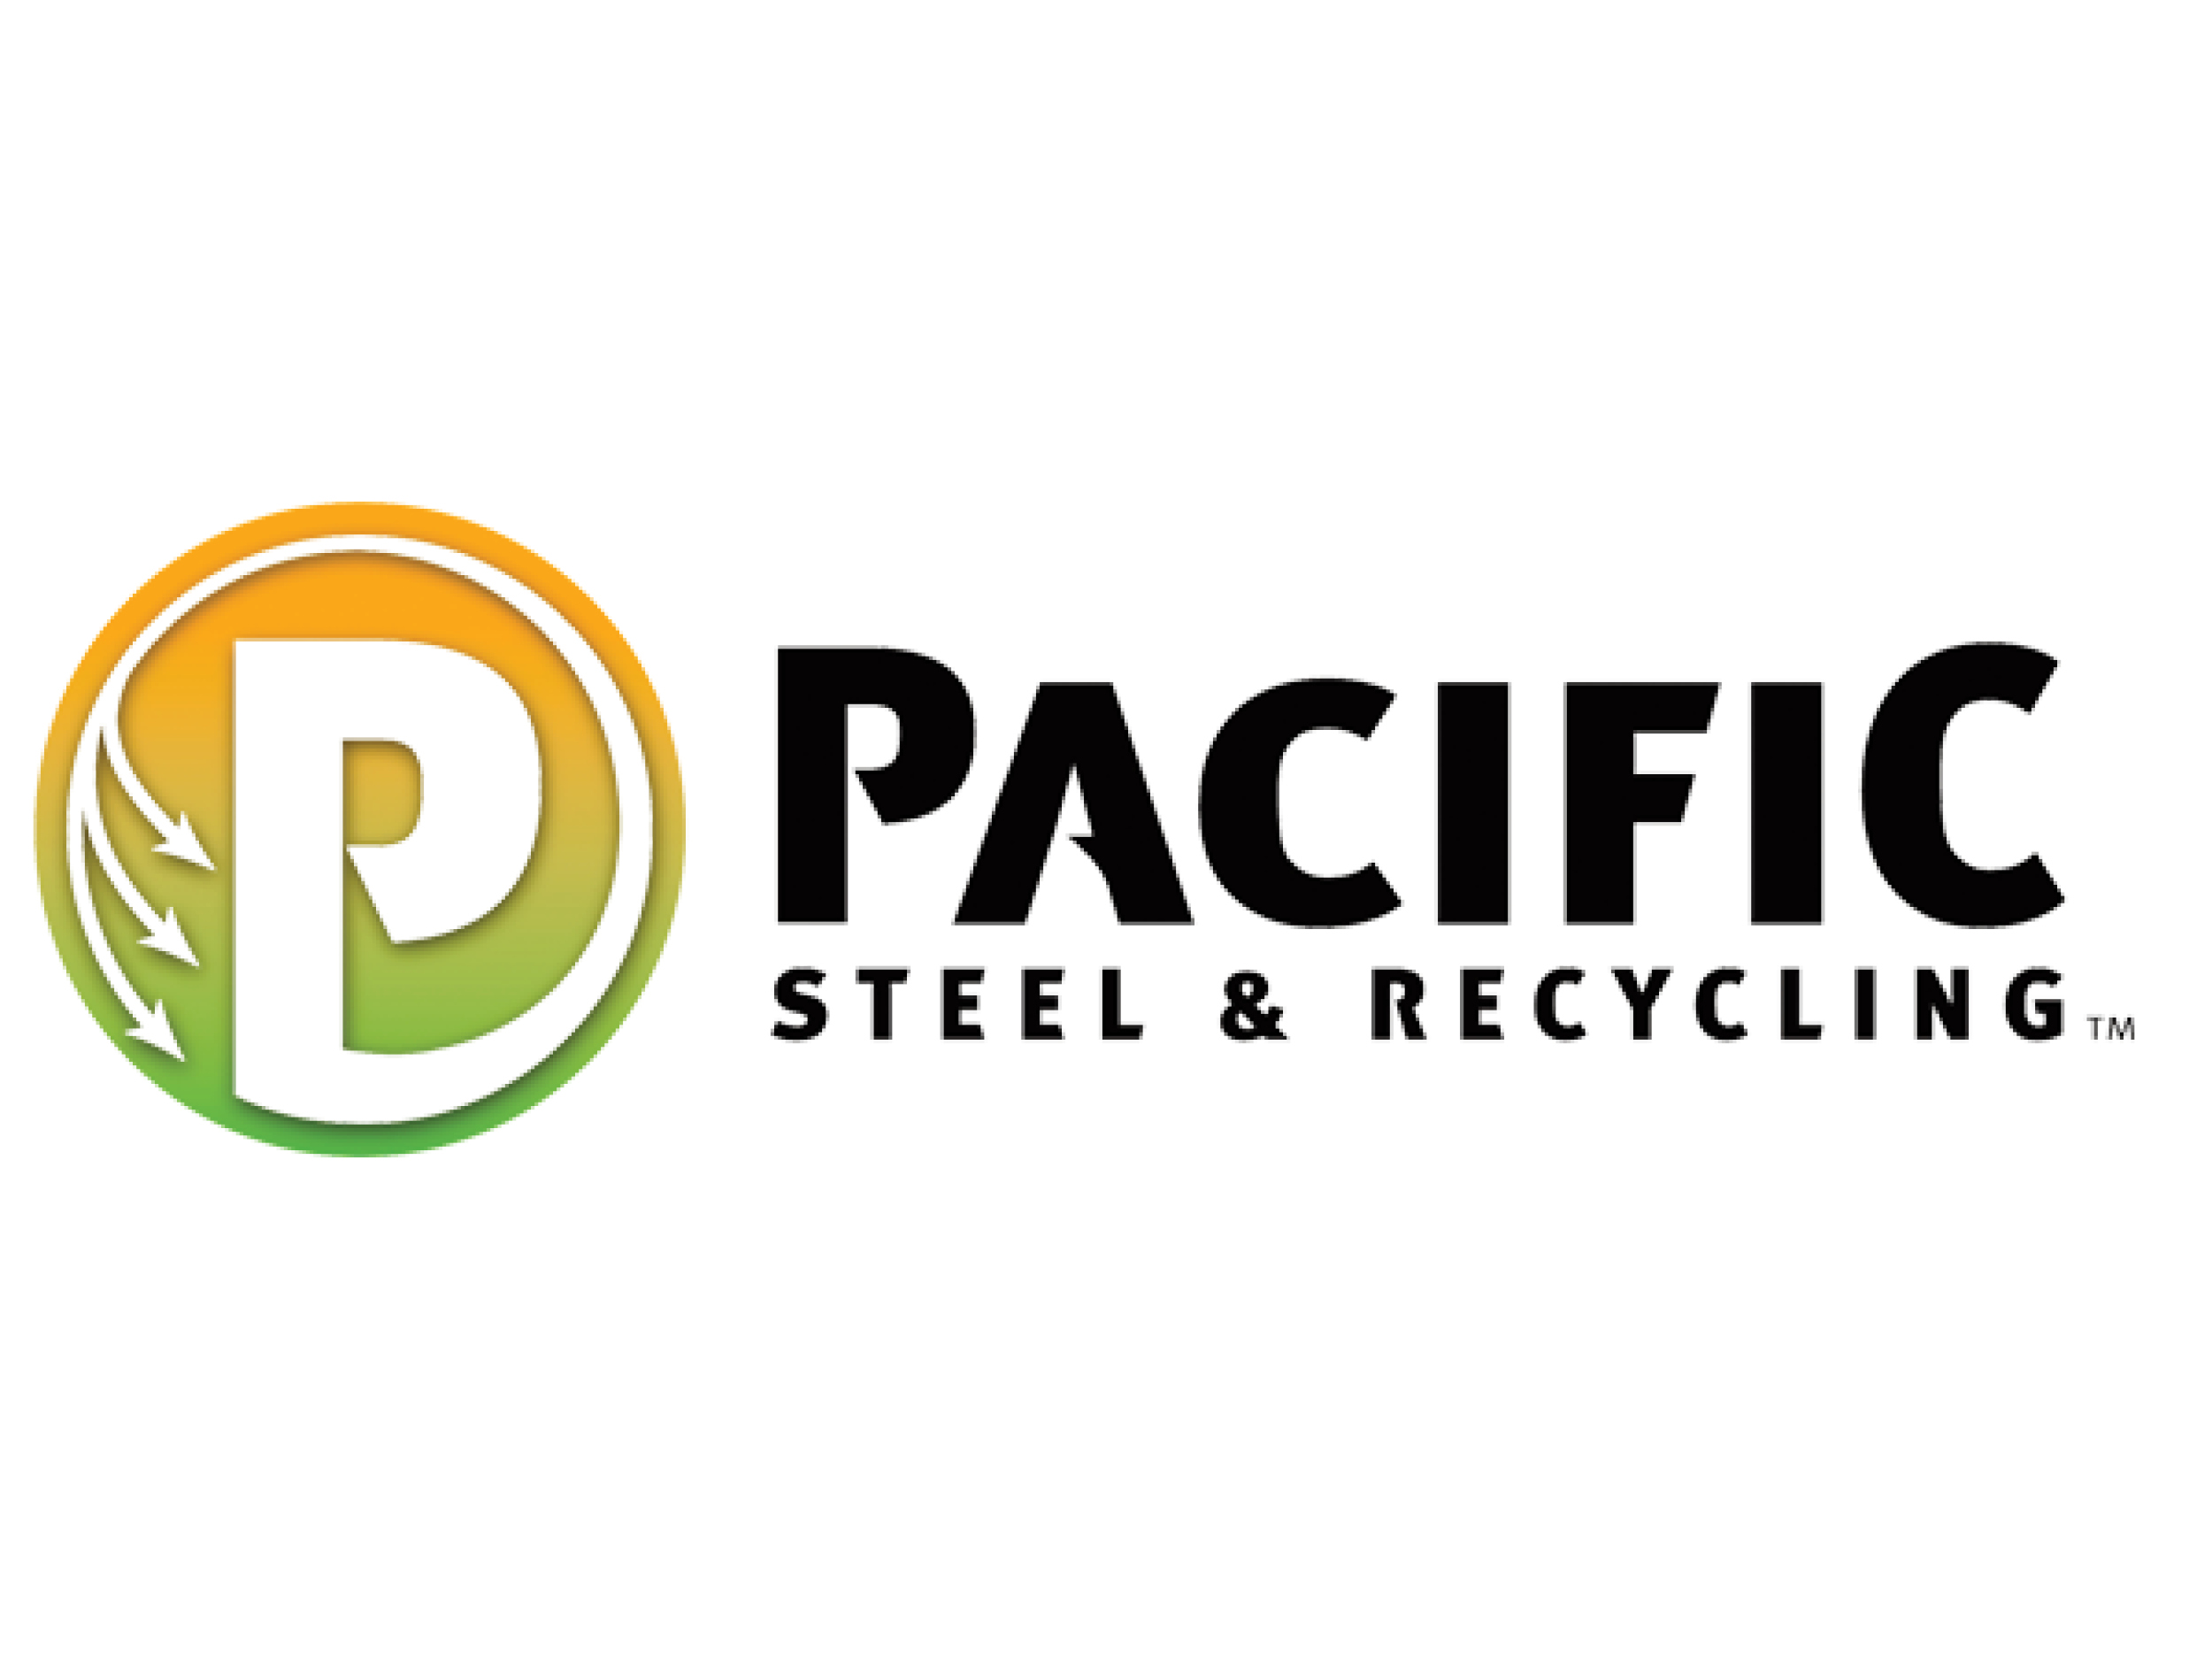 Feature: http://www.pacific-steel.com/